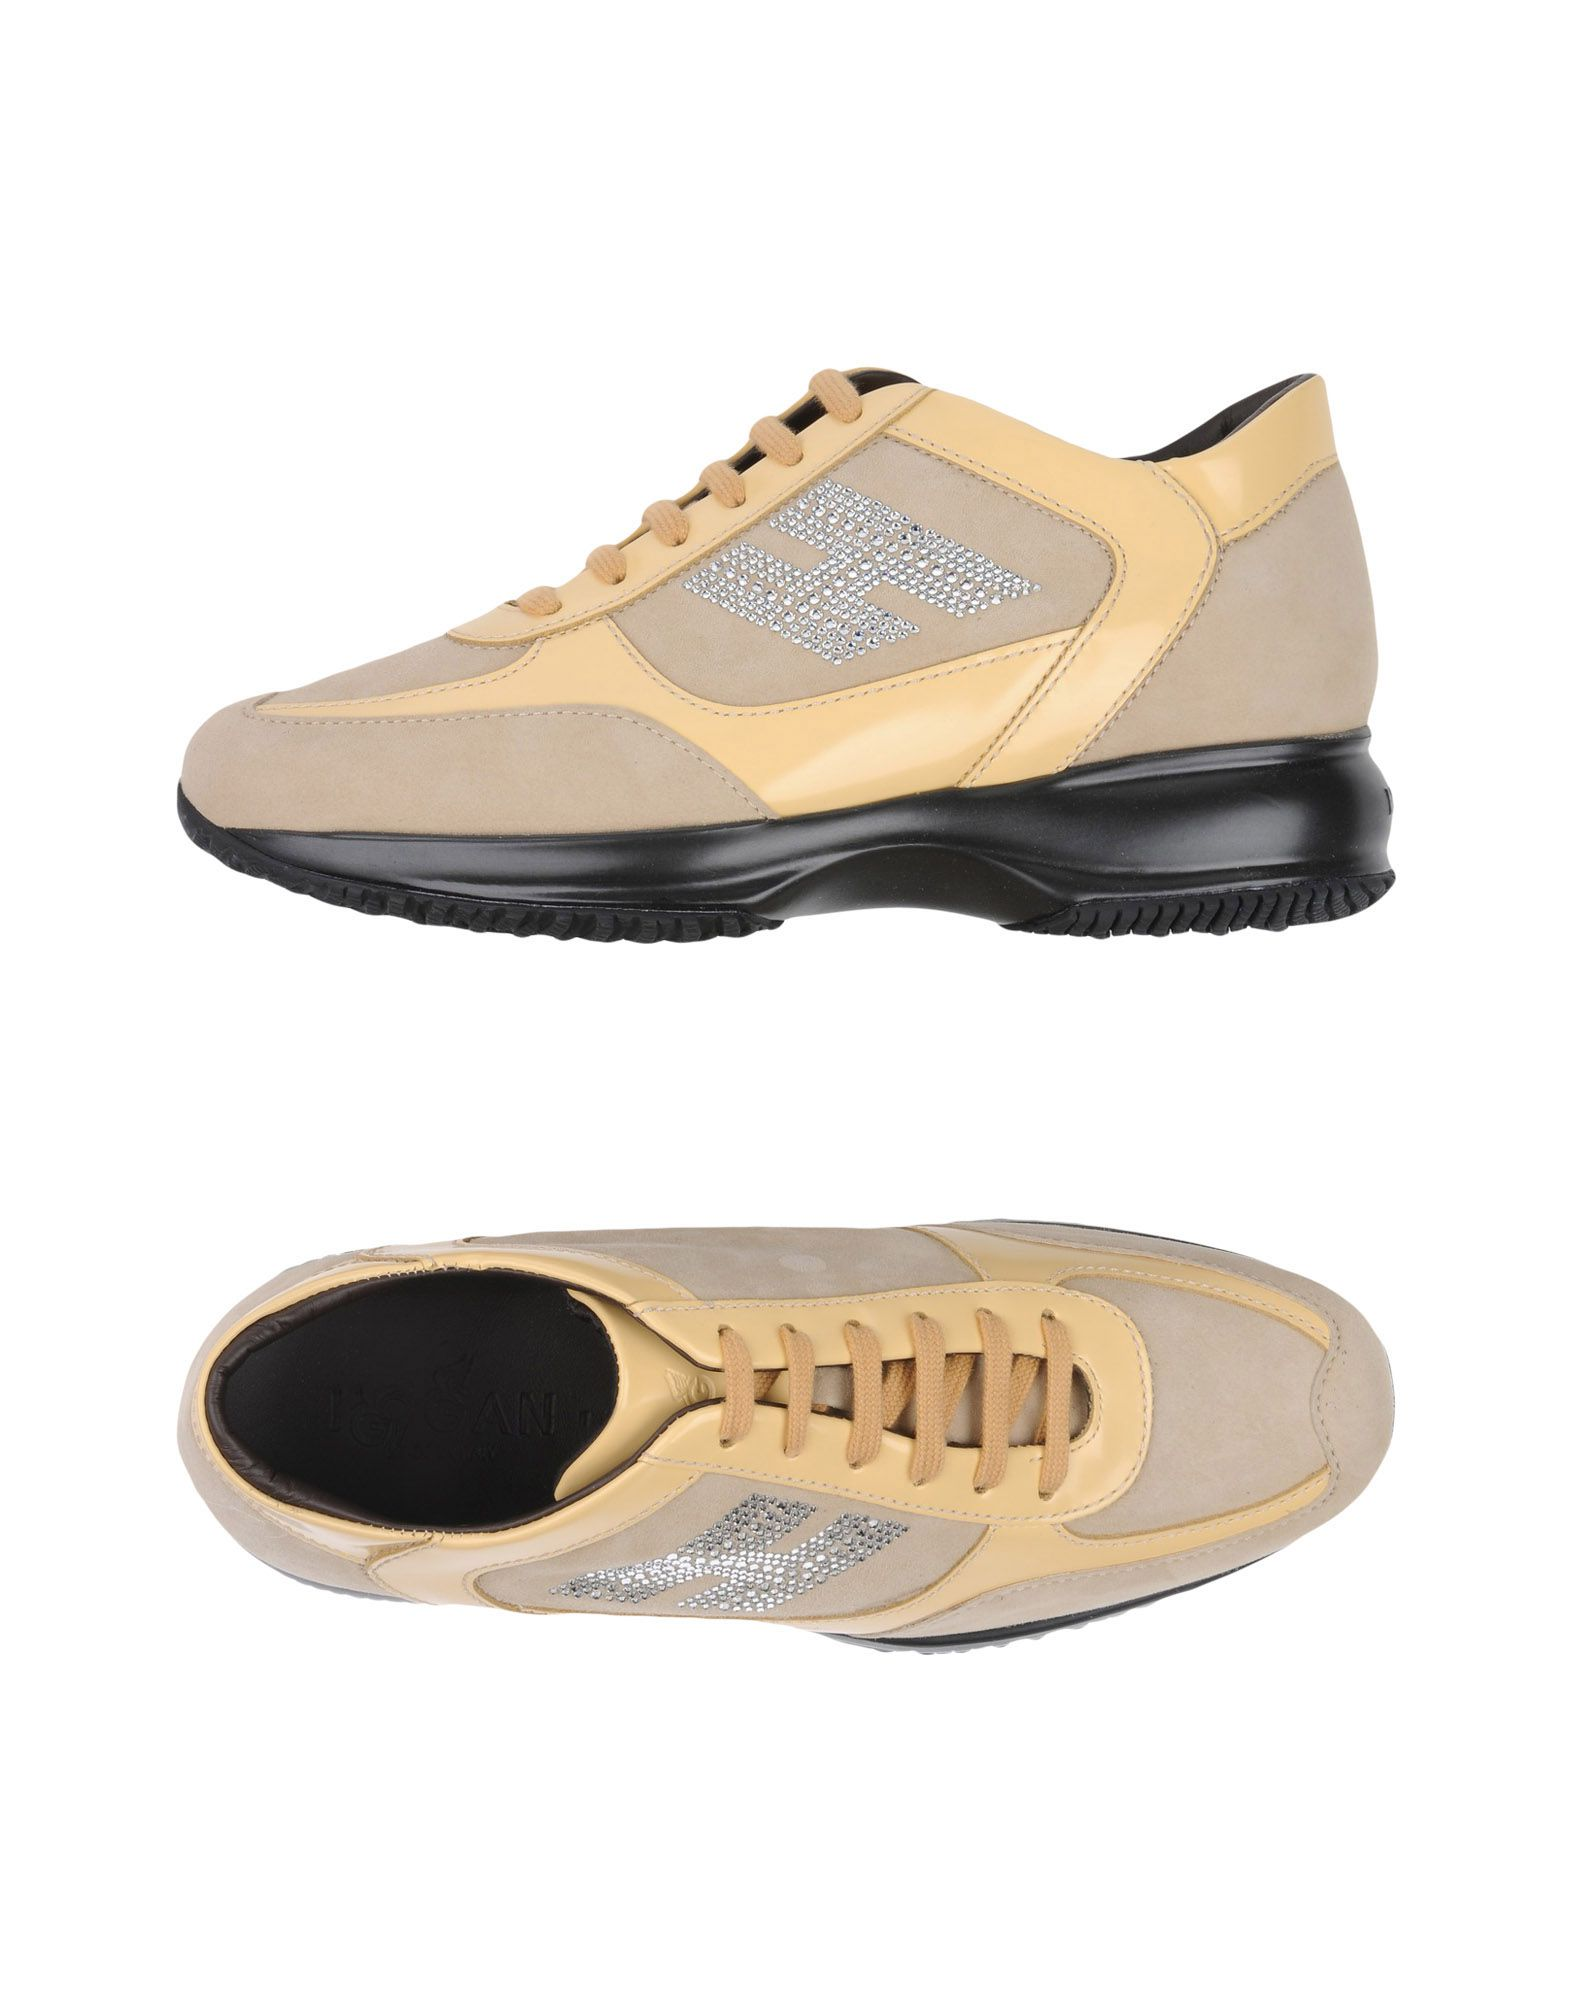 Hogan Sneakers - Women Hogan Sneakers online on on on  United Kingdom - 11289729TP 0cc13f